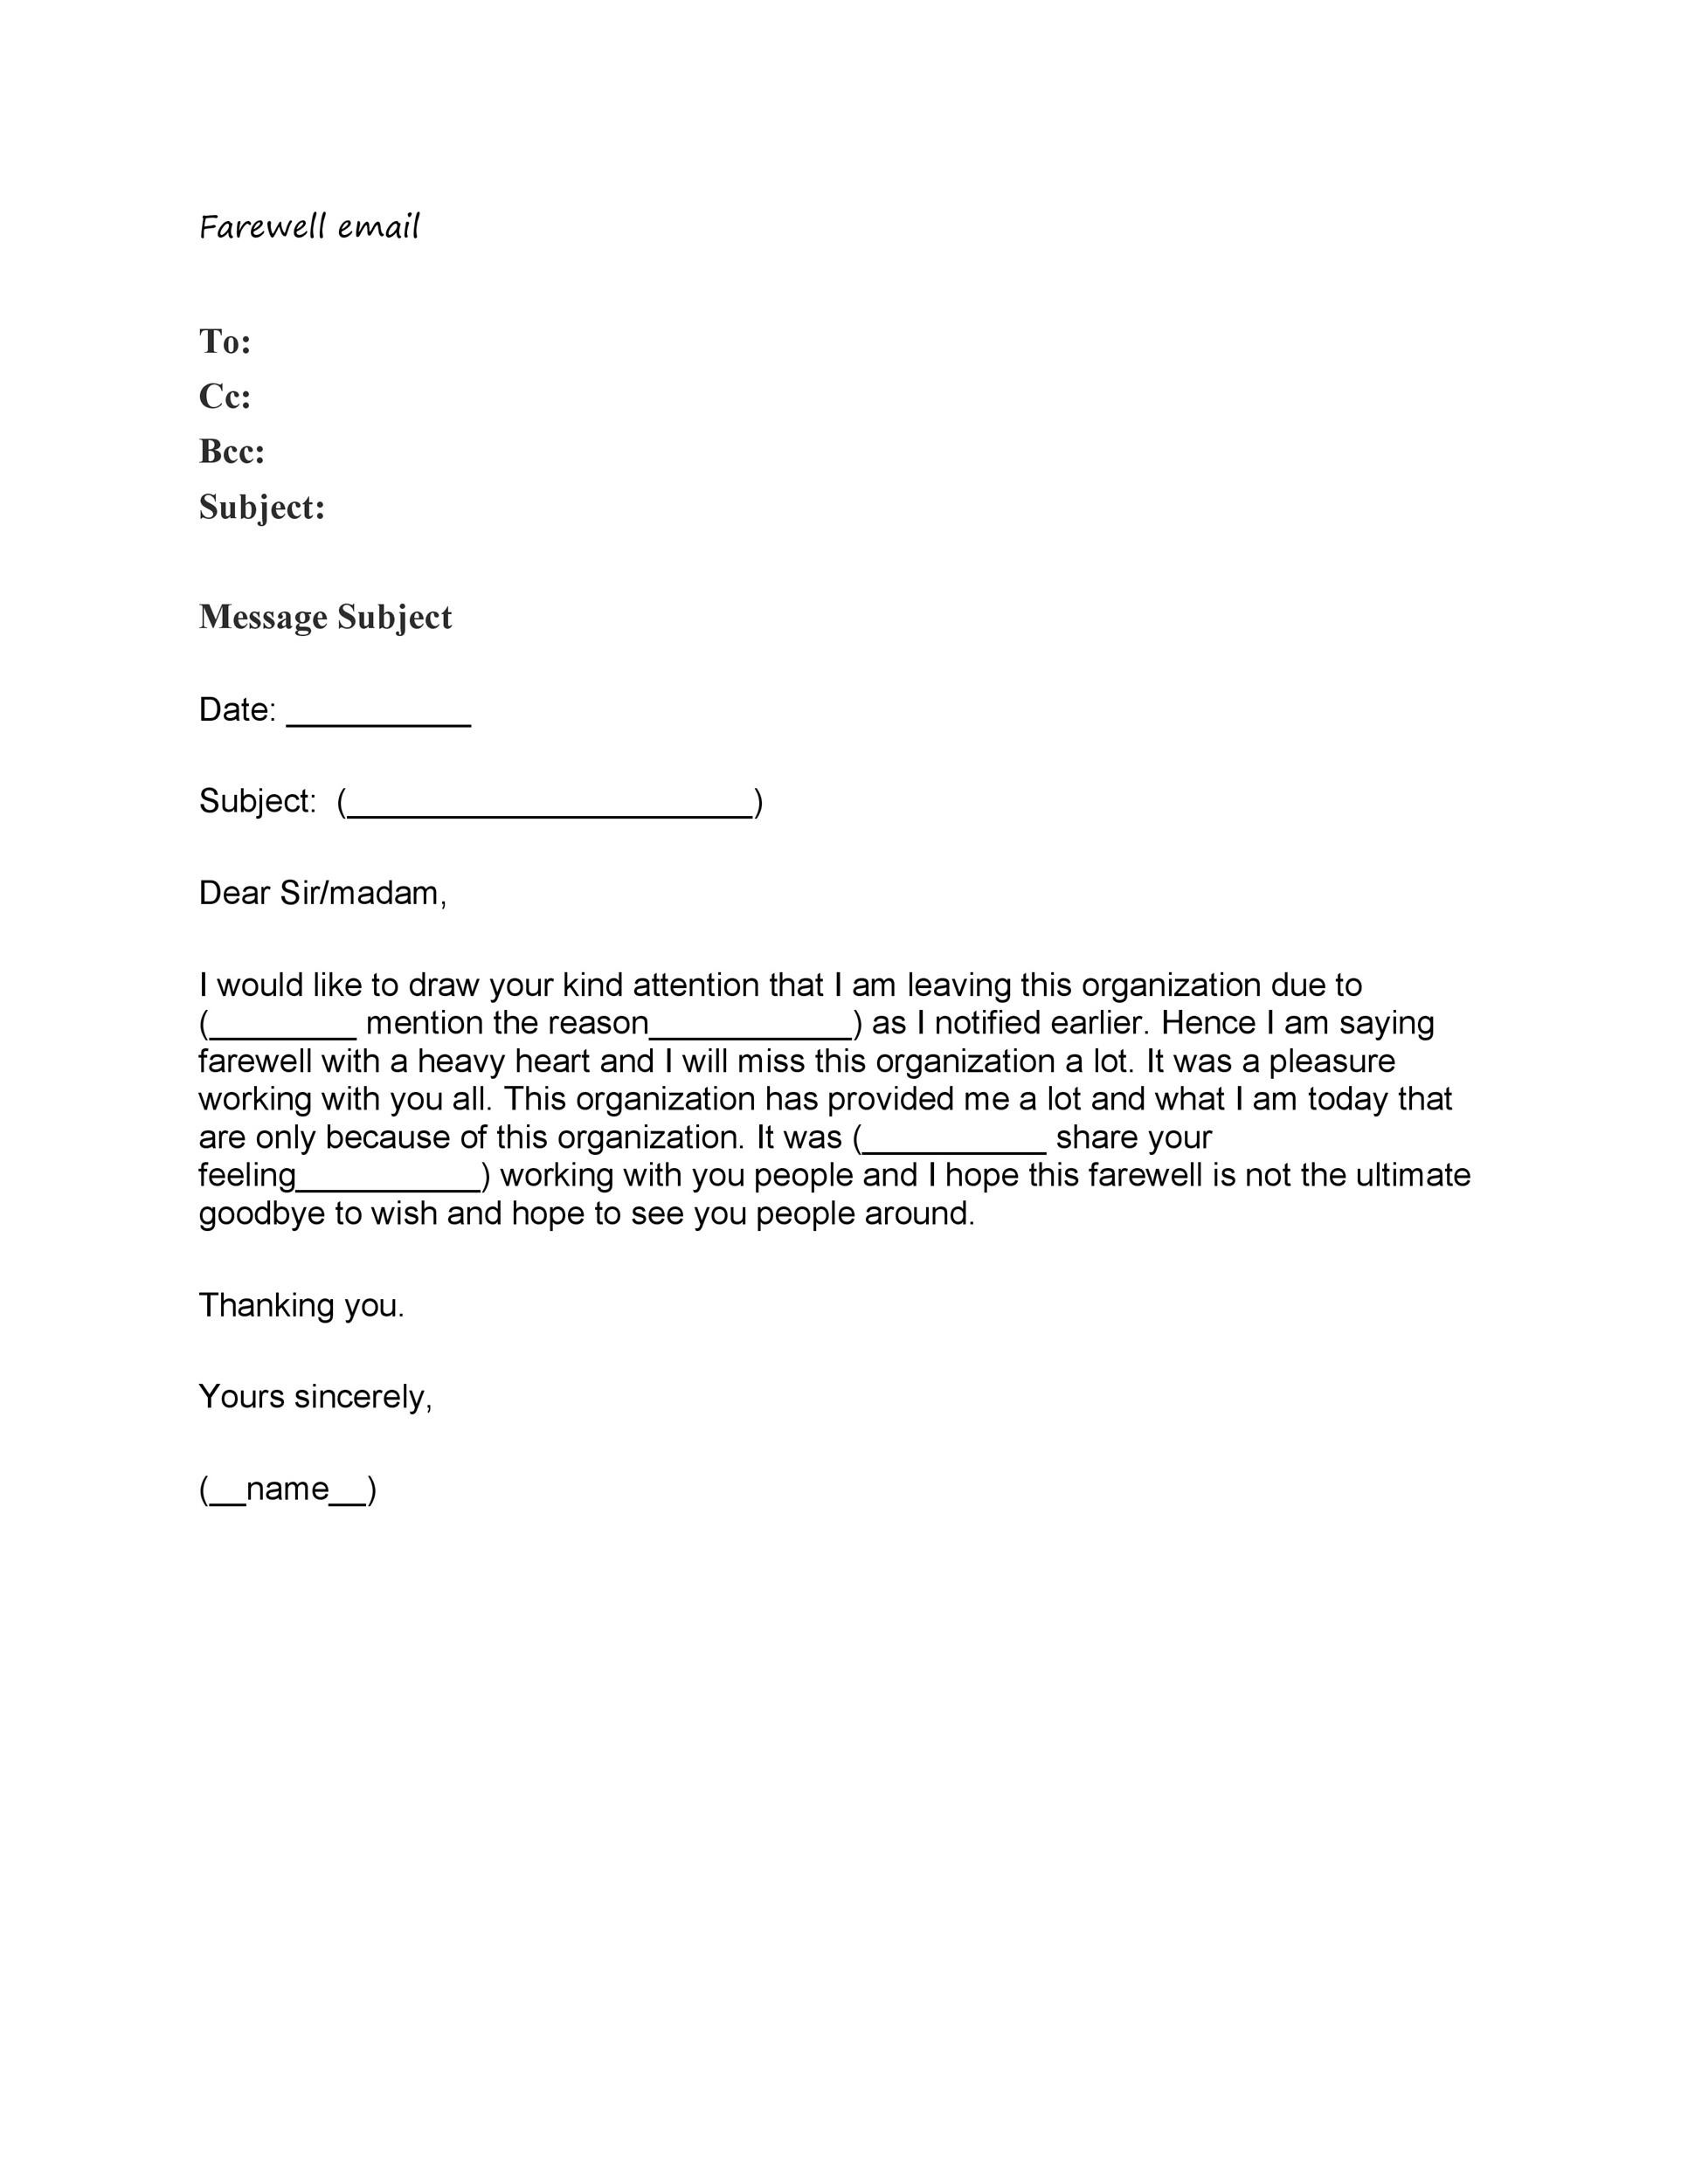 40 Farewell Email Templates To Coworkers Á… Templatelab